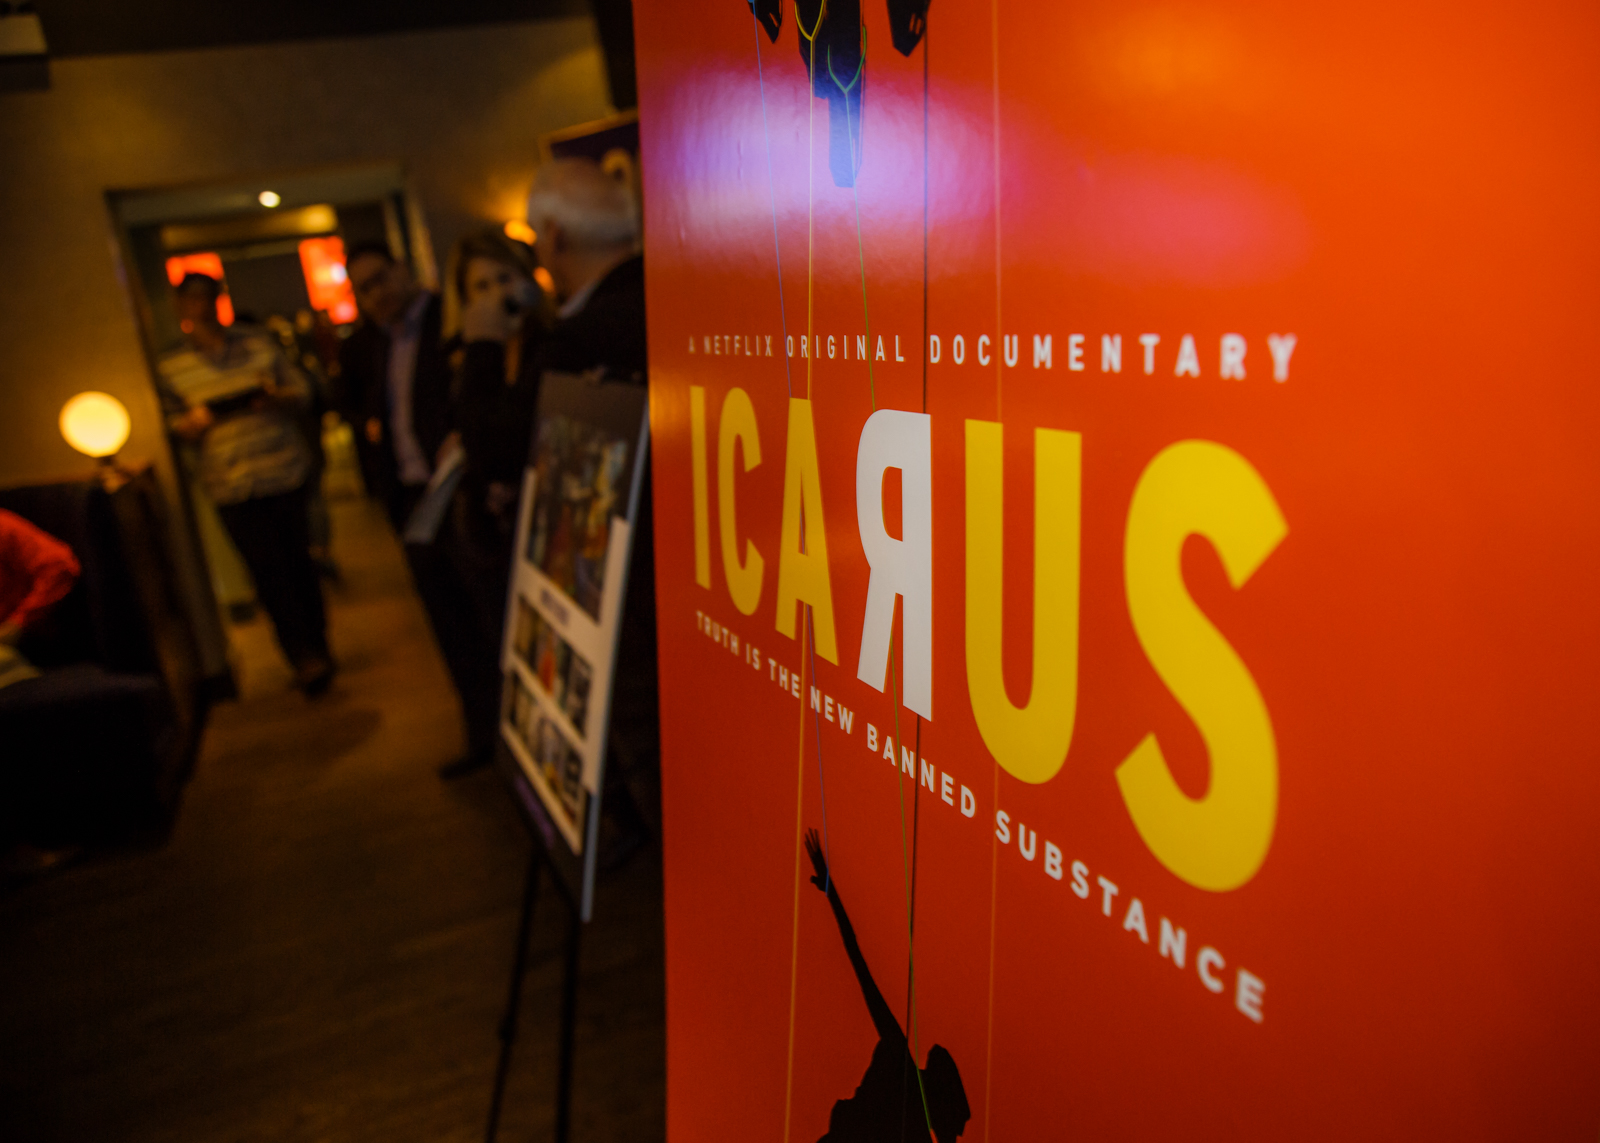 180222-dinner-and-docs-icarus-062.jpg